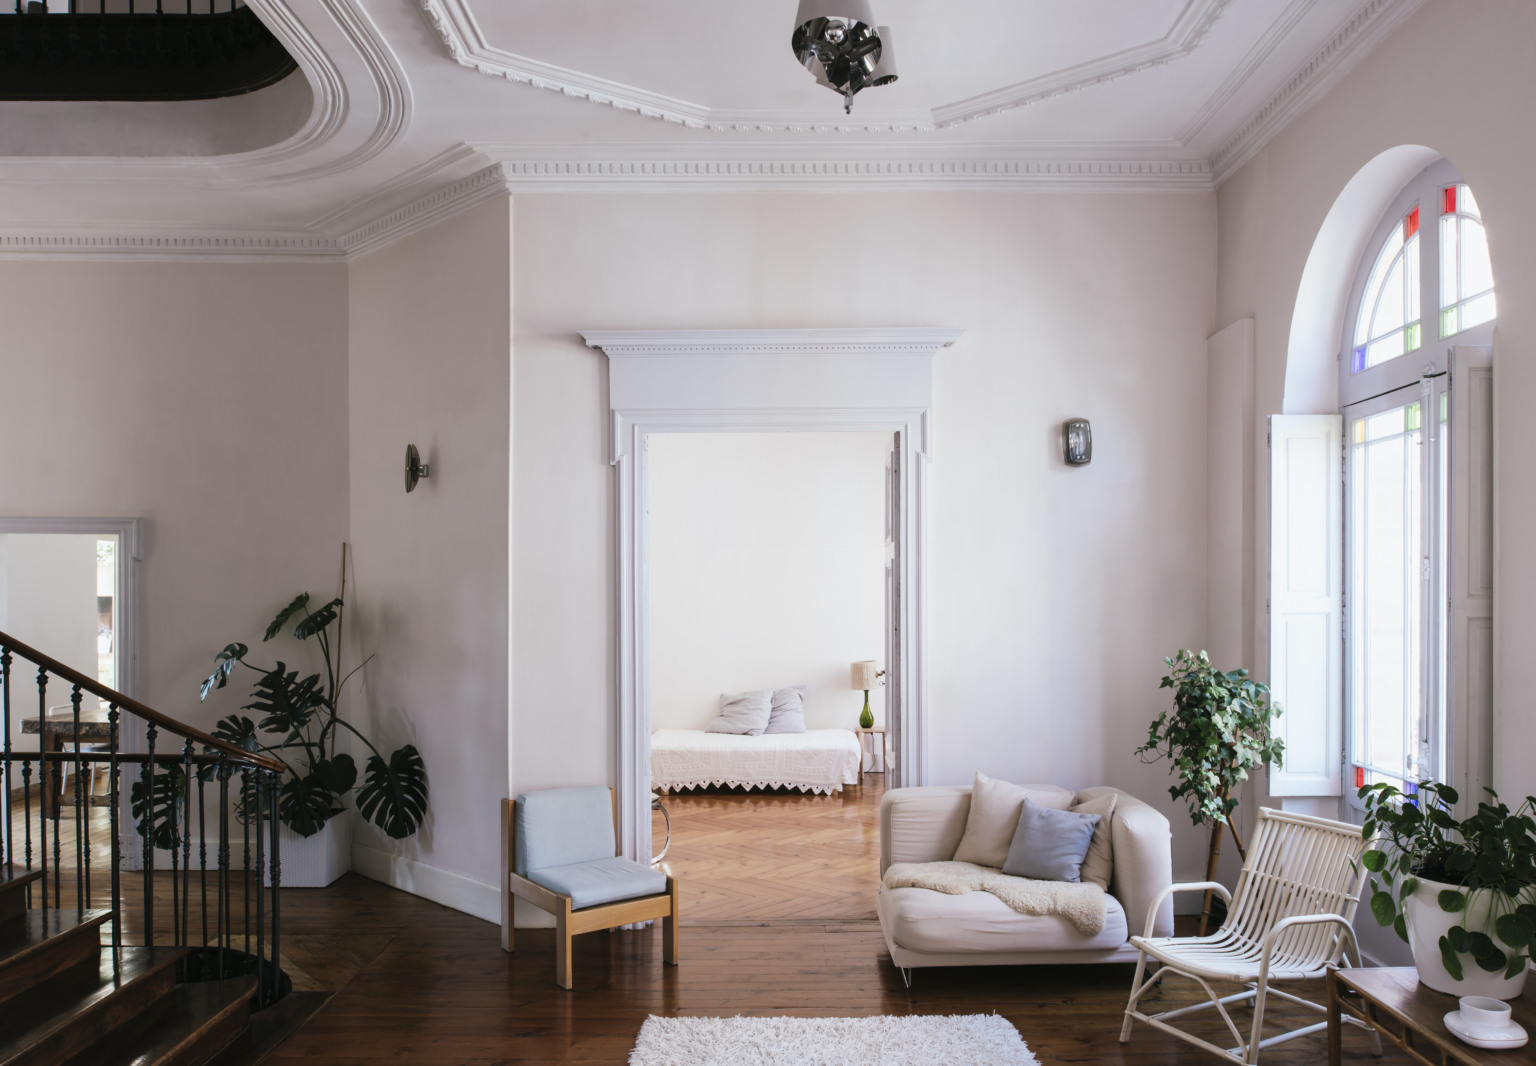 La Vie en Rose: Inside a Costumier's Dreamlike, DIY Maison in France